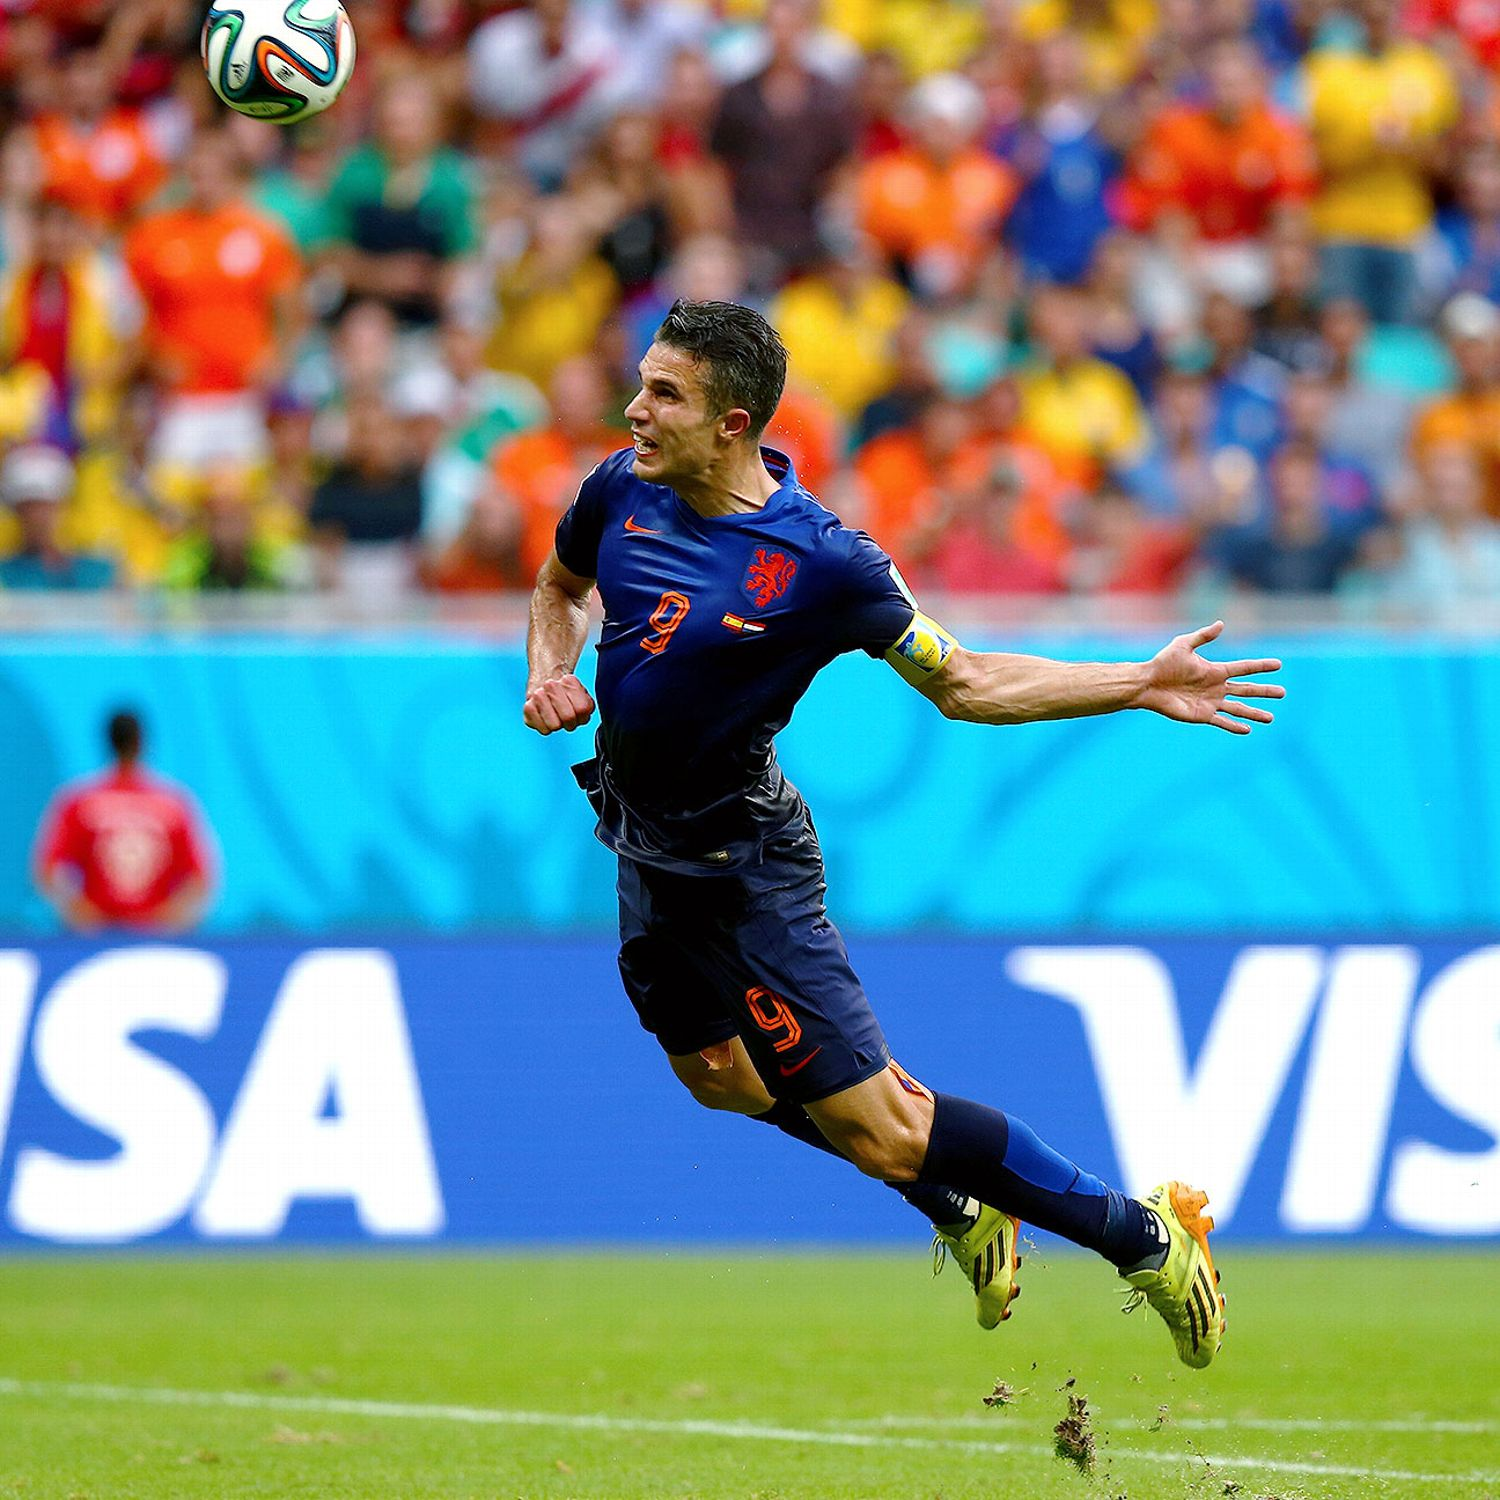 What does rvp stand for